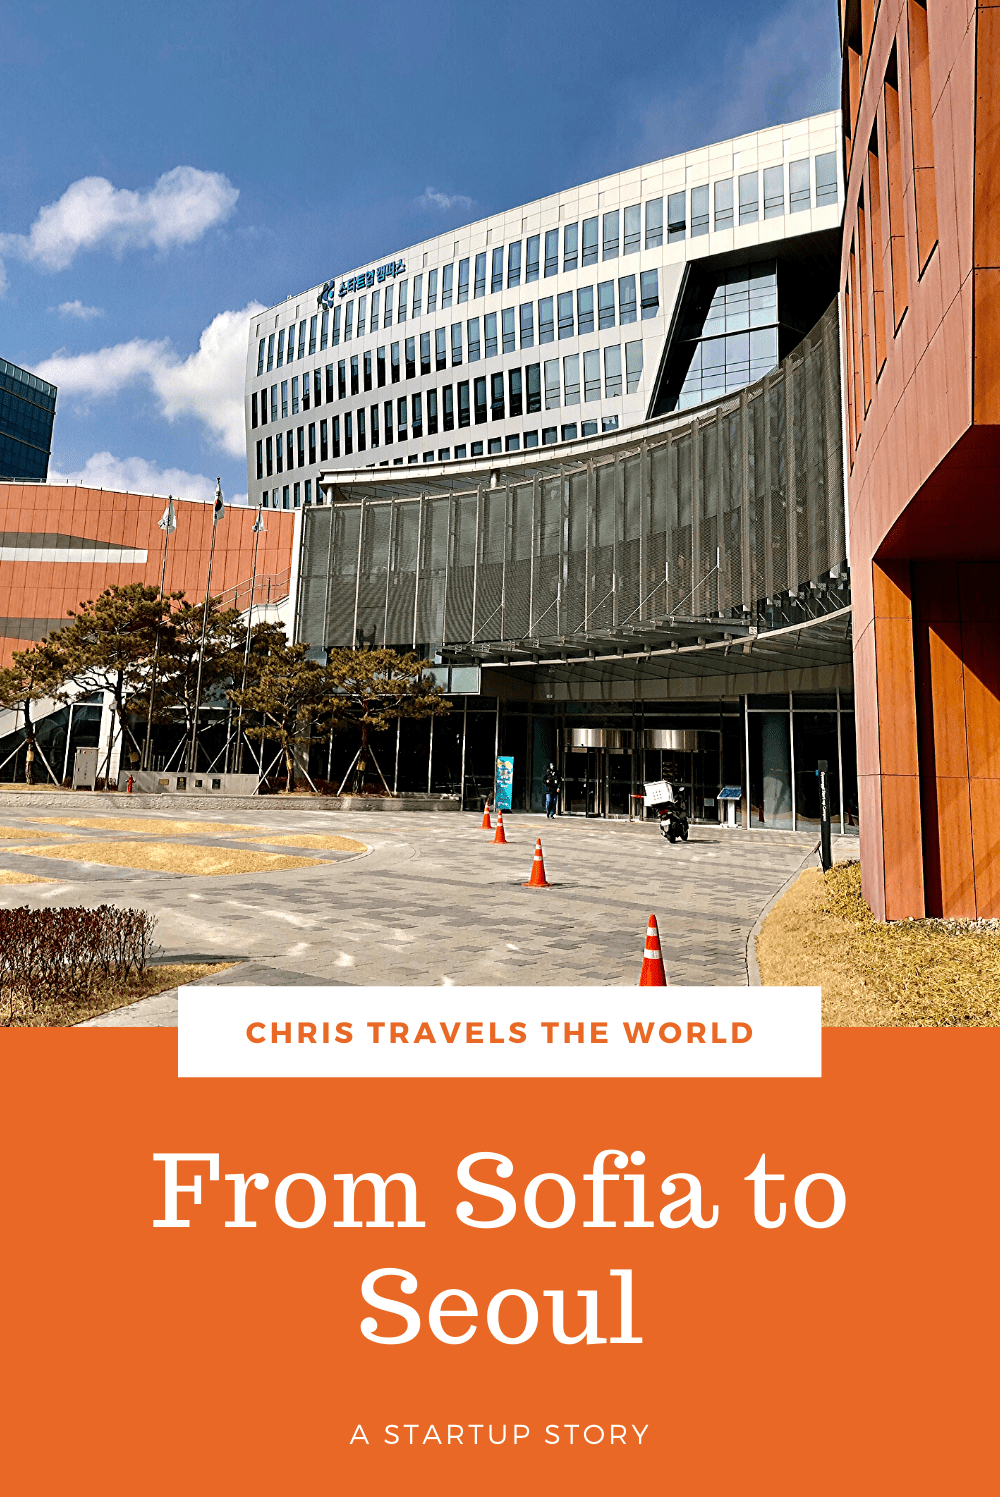 From Sofia to Seoul - Startup Story